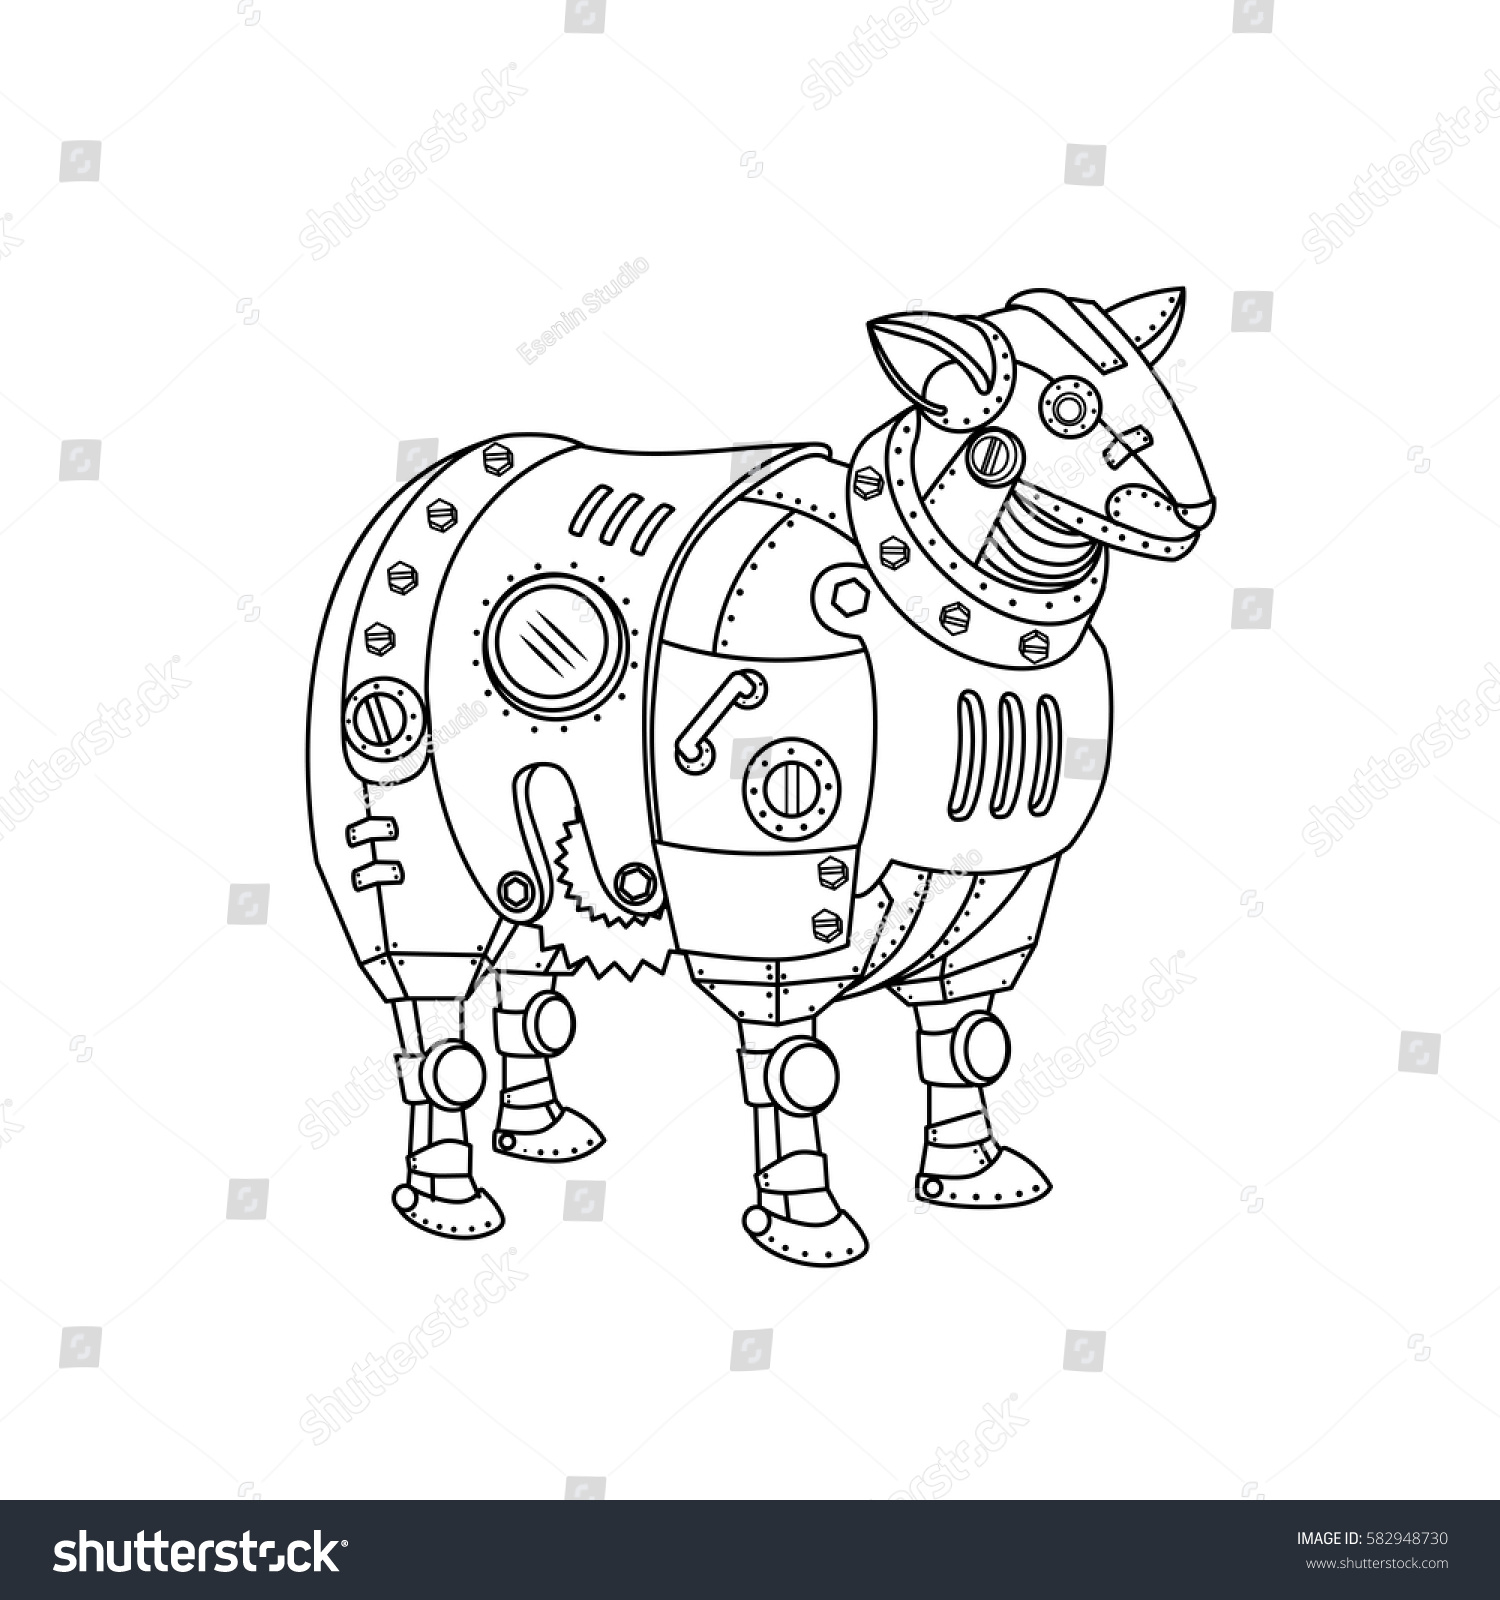 free animal mechanicals coloring pages - photo#9